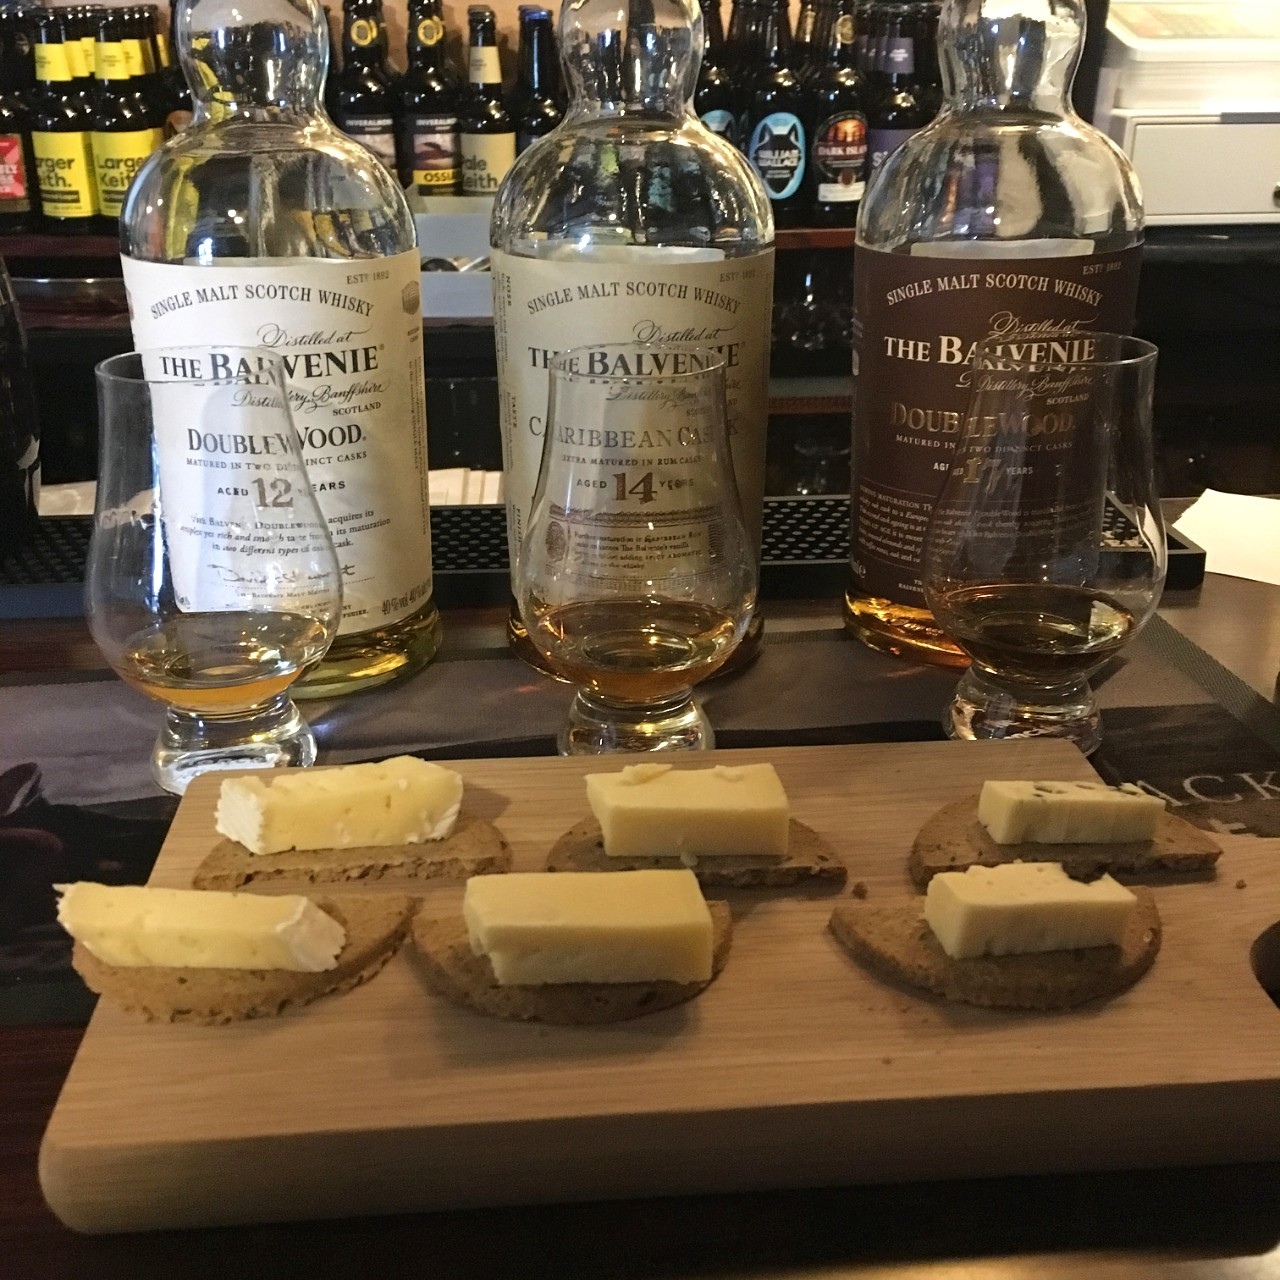 whisky-and-cheese-pairing-at-Seven-Stills-pub.jpg?mtime=20190826111310#asset:106721